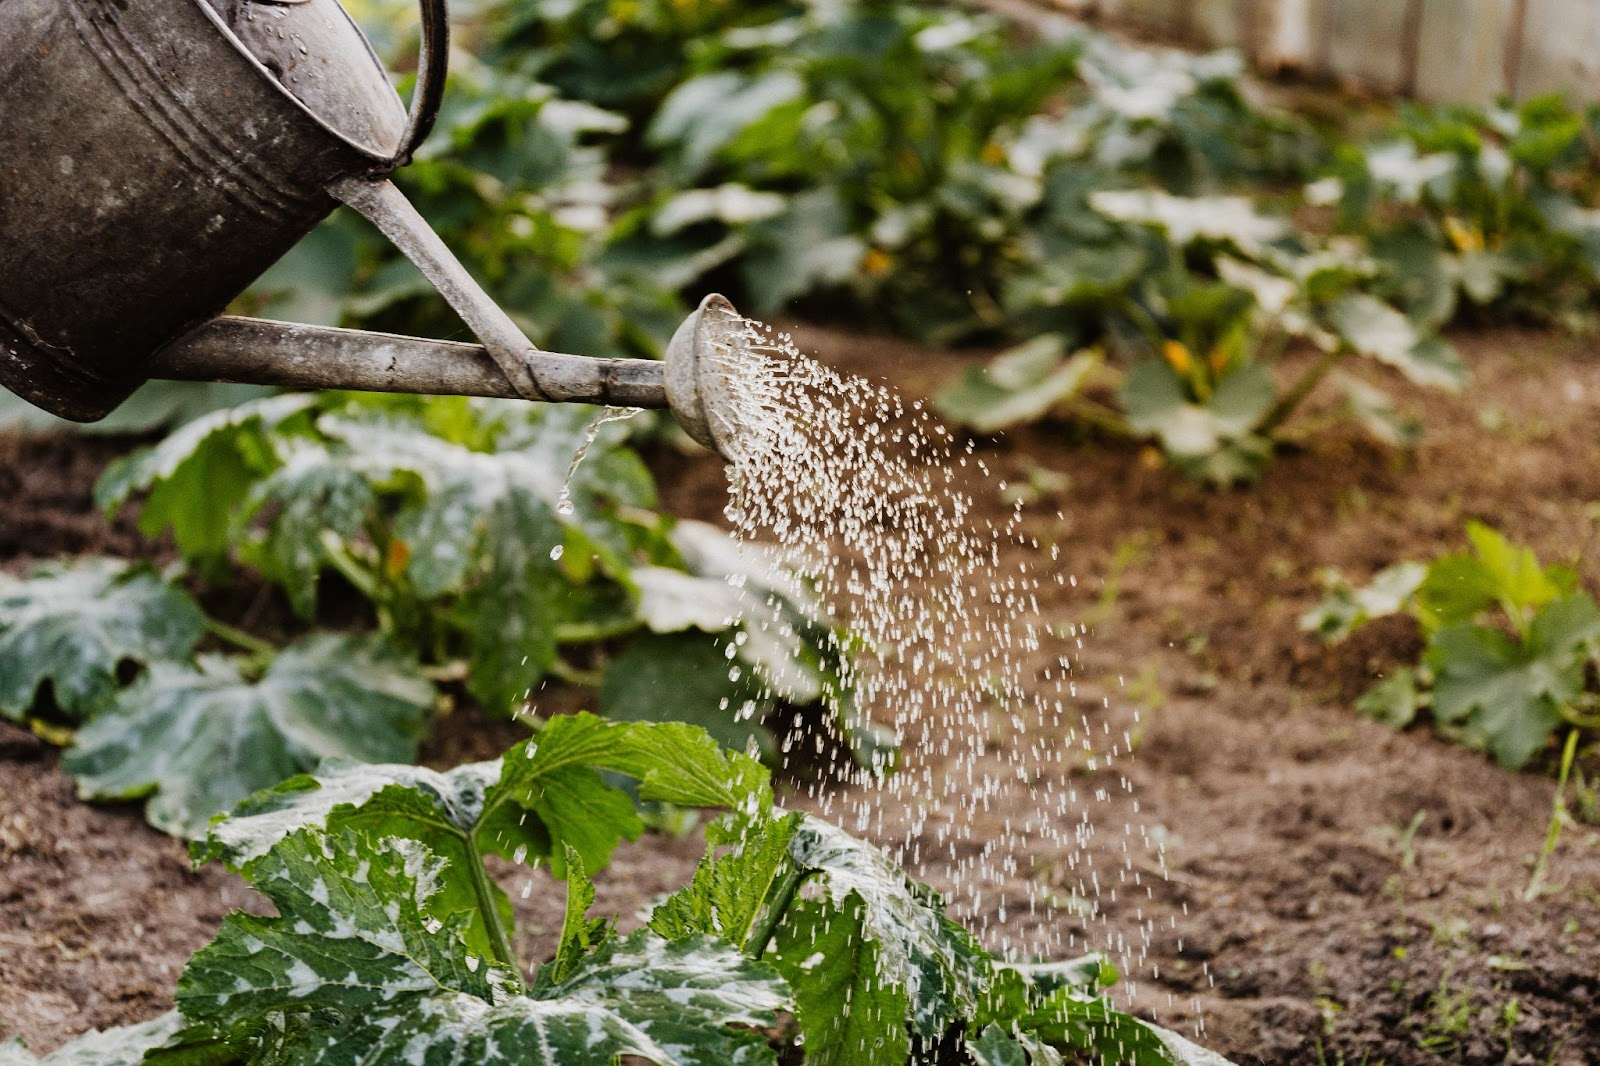 A Drop's Worth: The Value of Water For Food Security